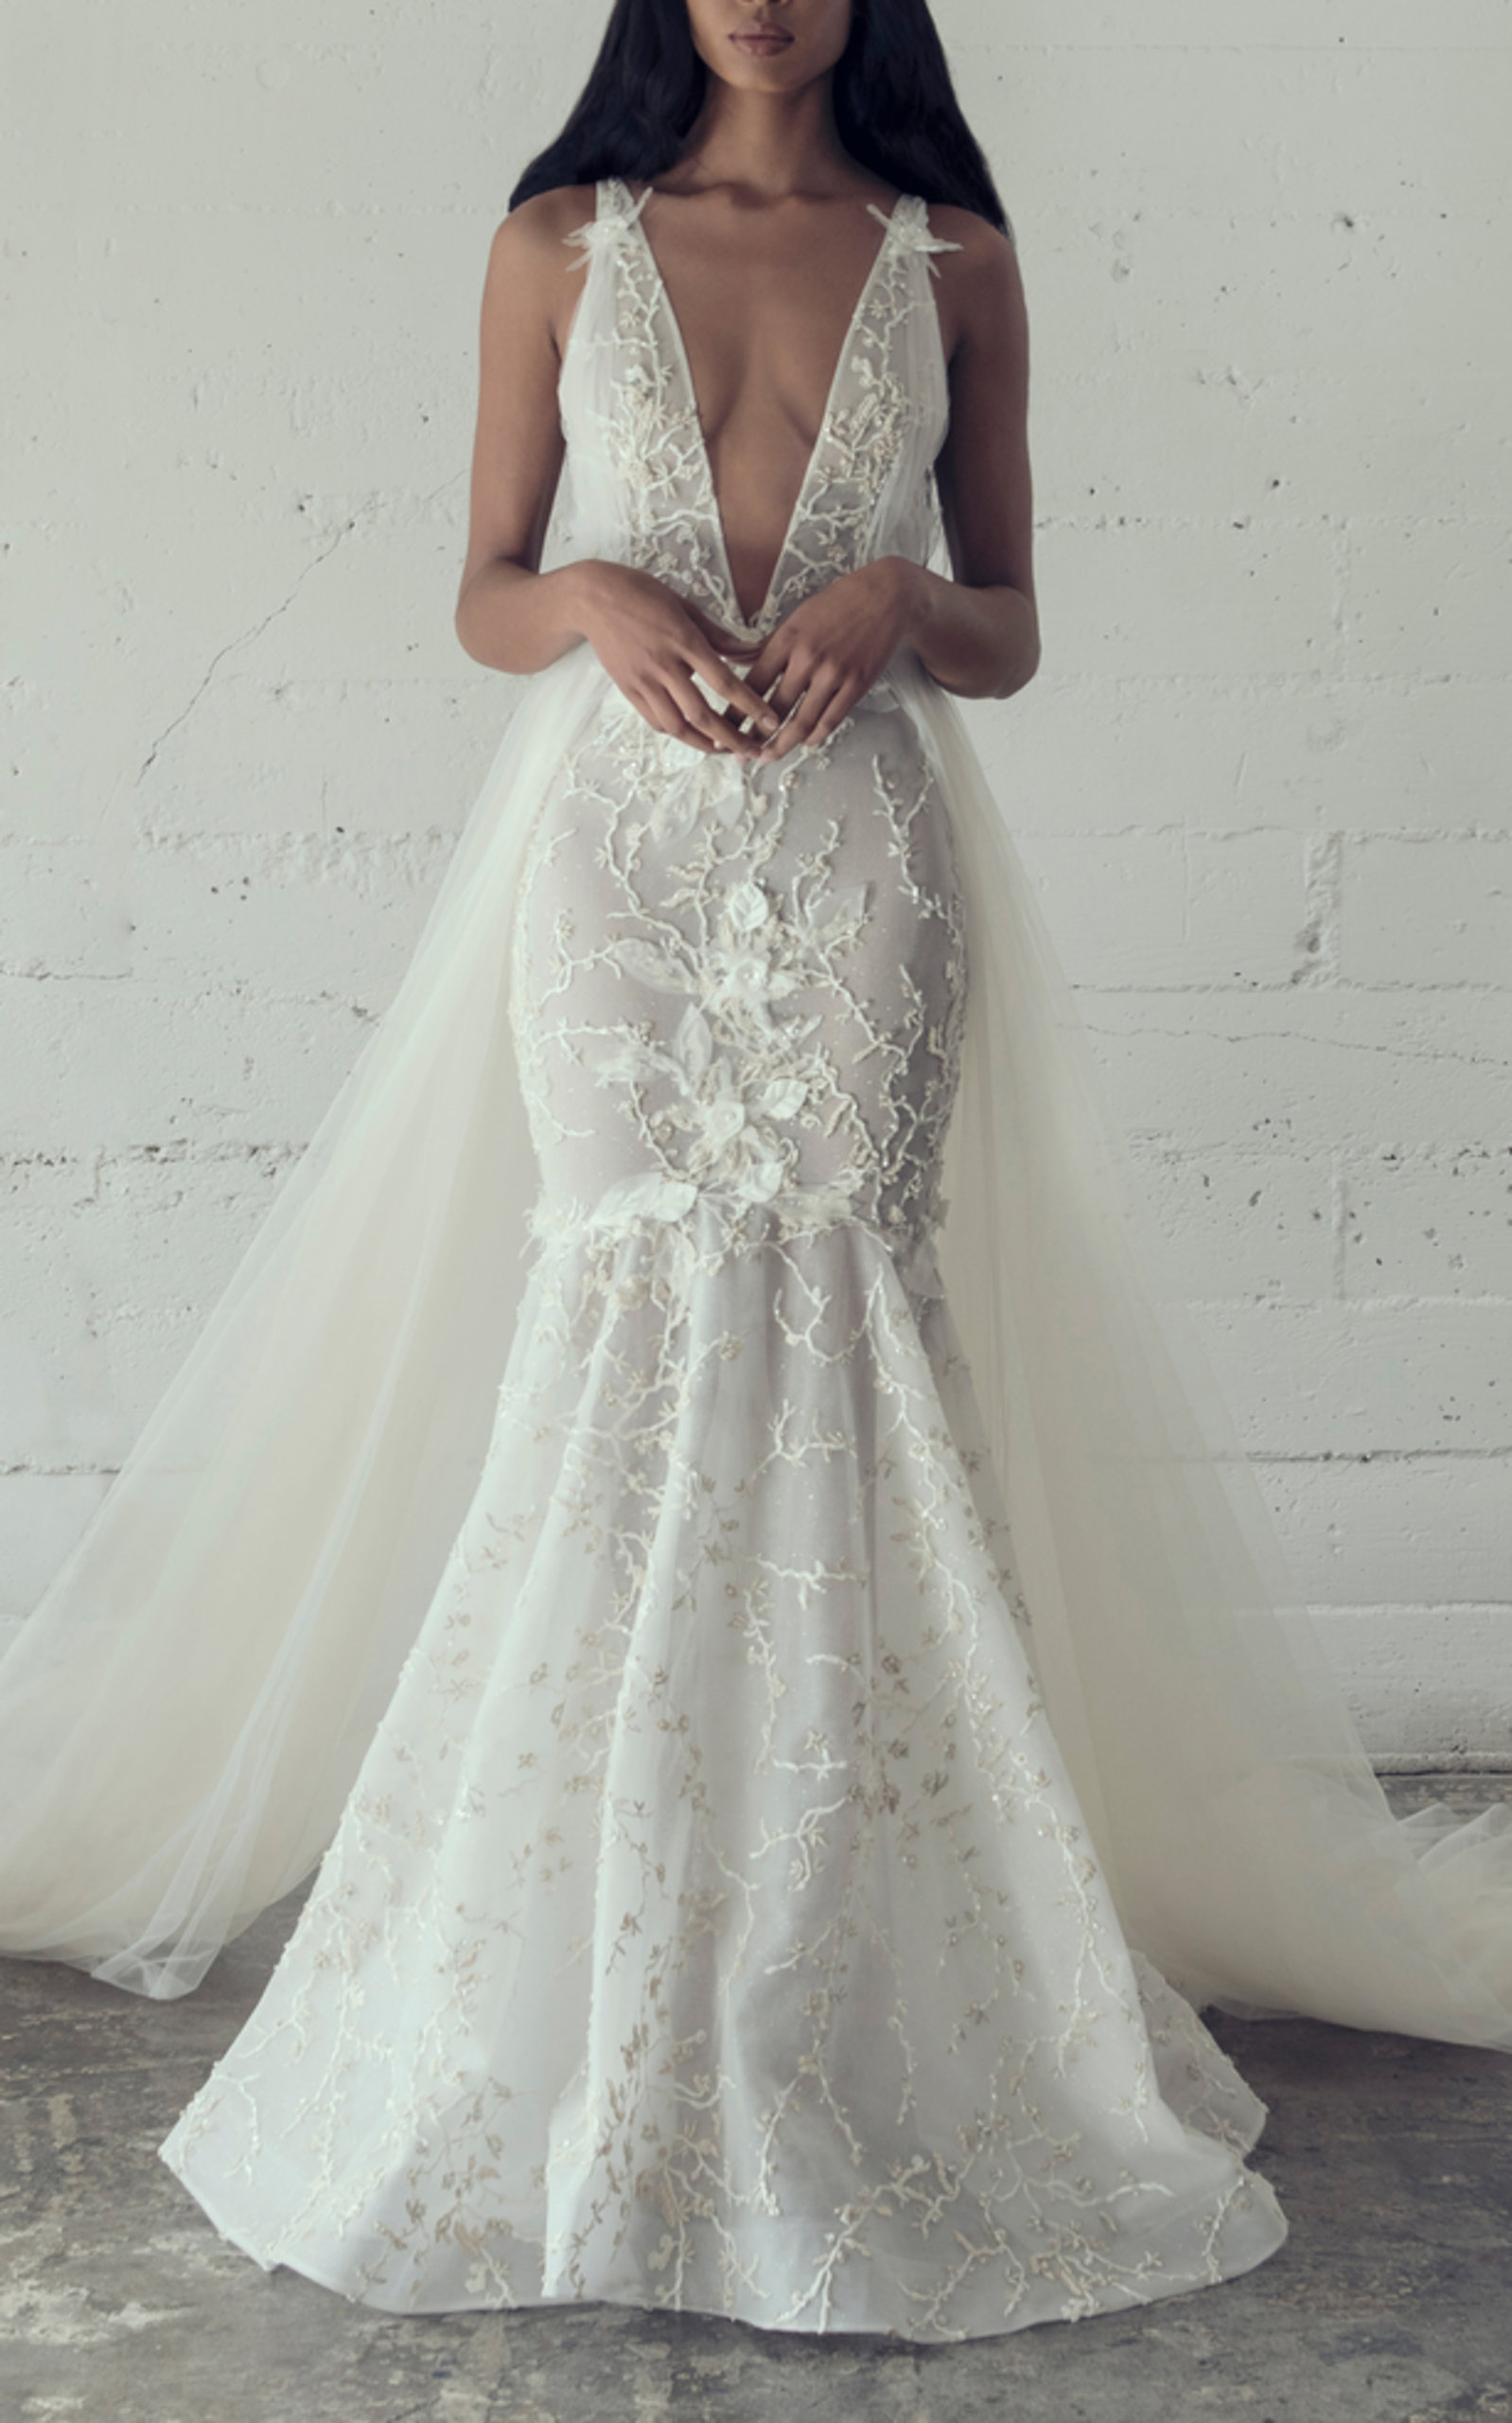 ADAM ZOHAR CRISTA MERMAID GOWN